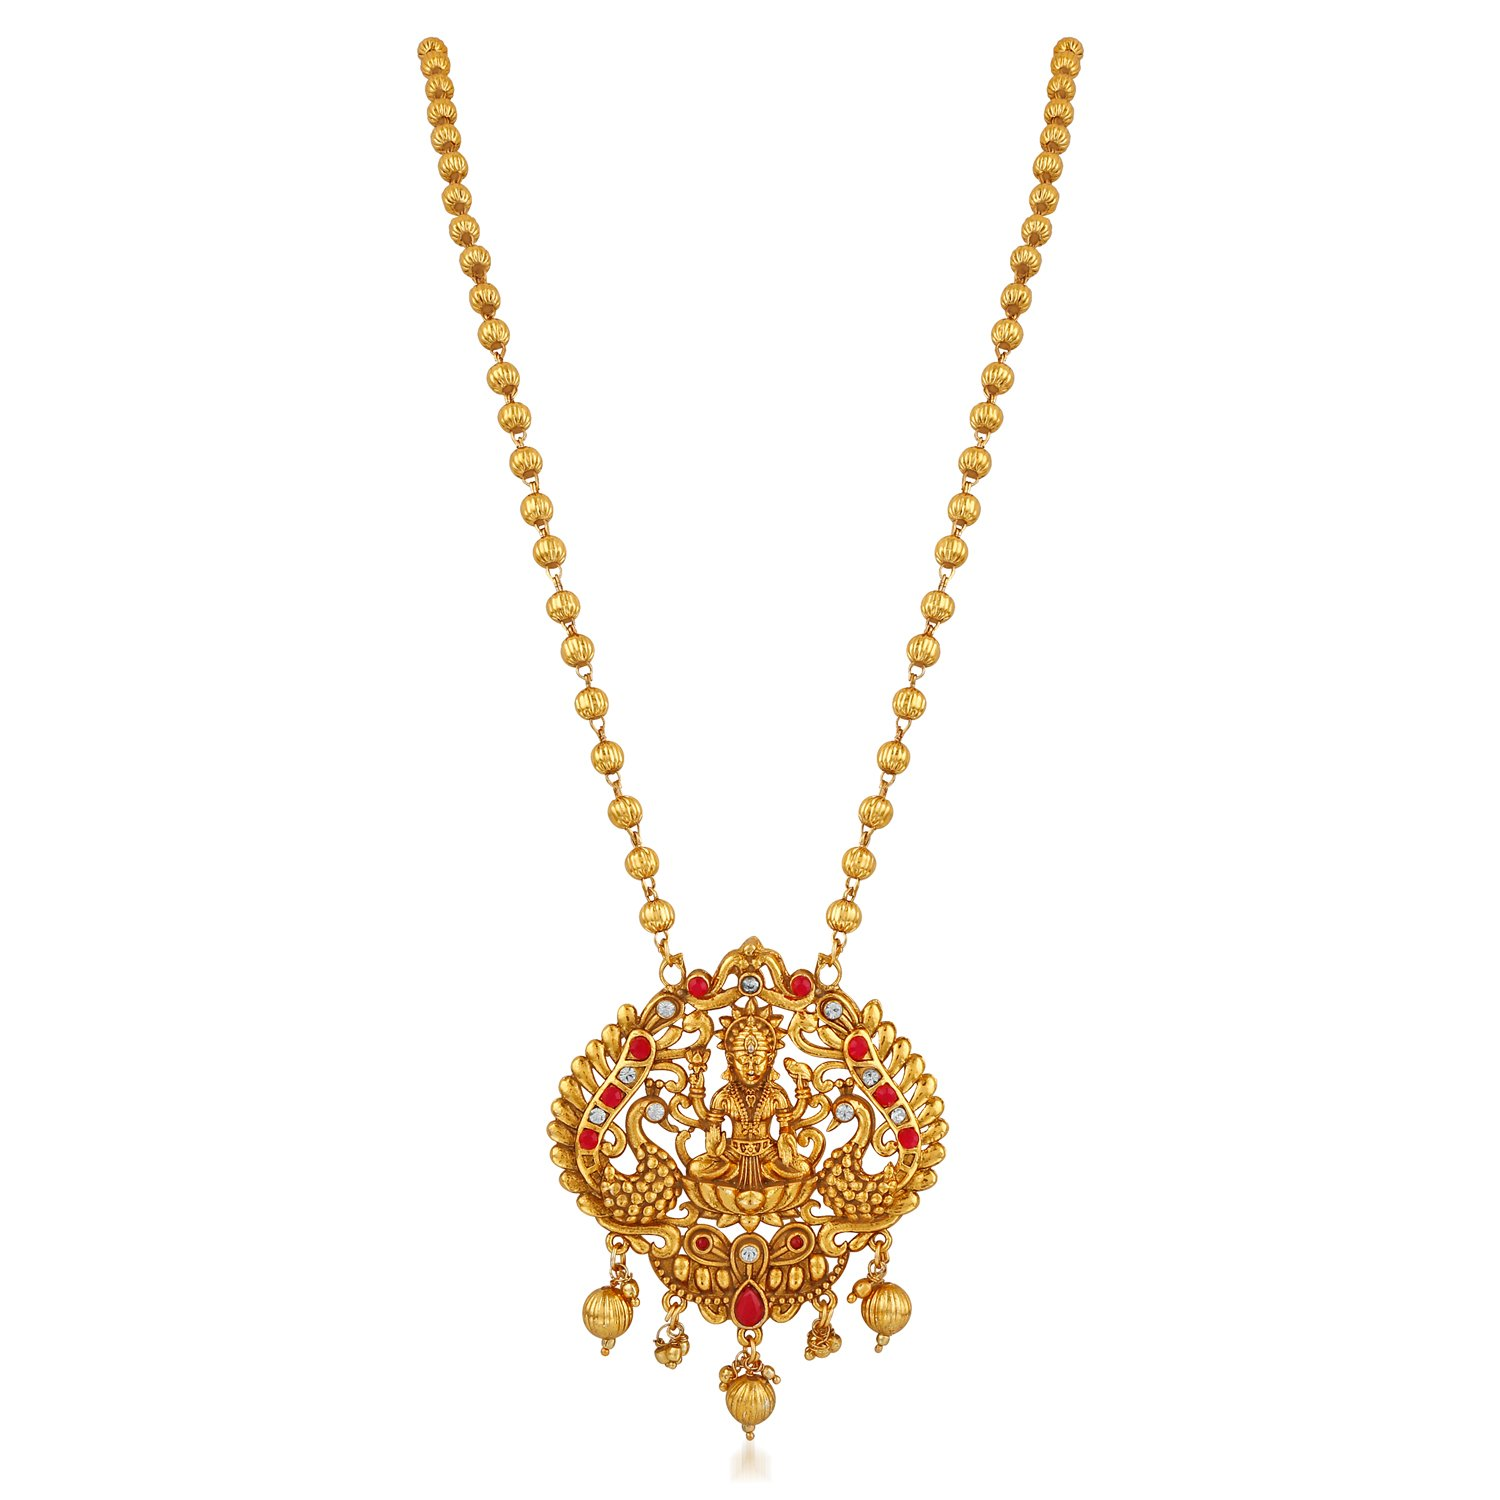 Apara Gold Plated South Indian Temple Jewellery Necklace Set for Women/Girls